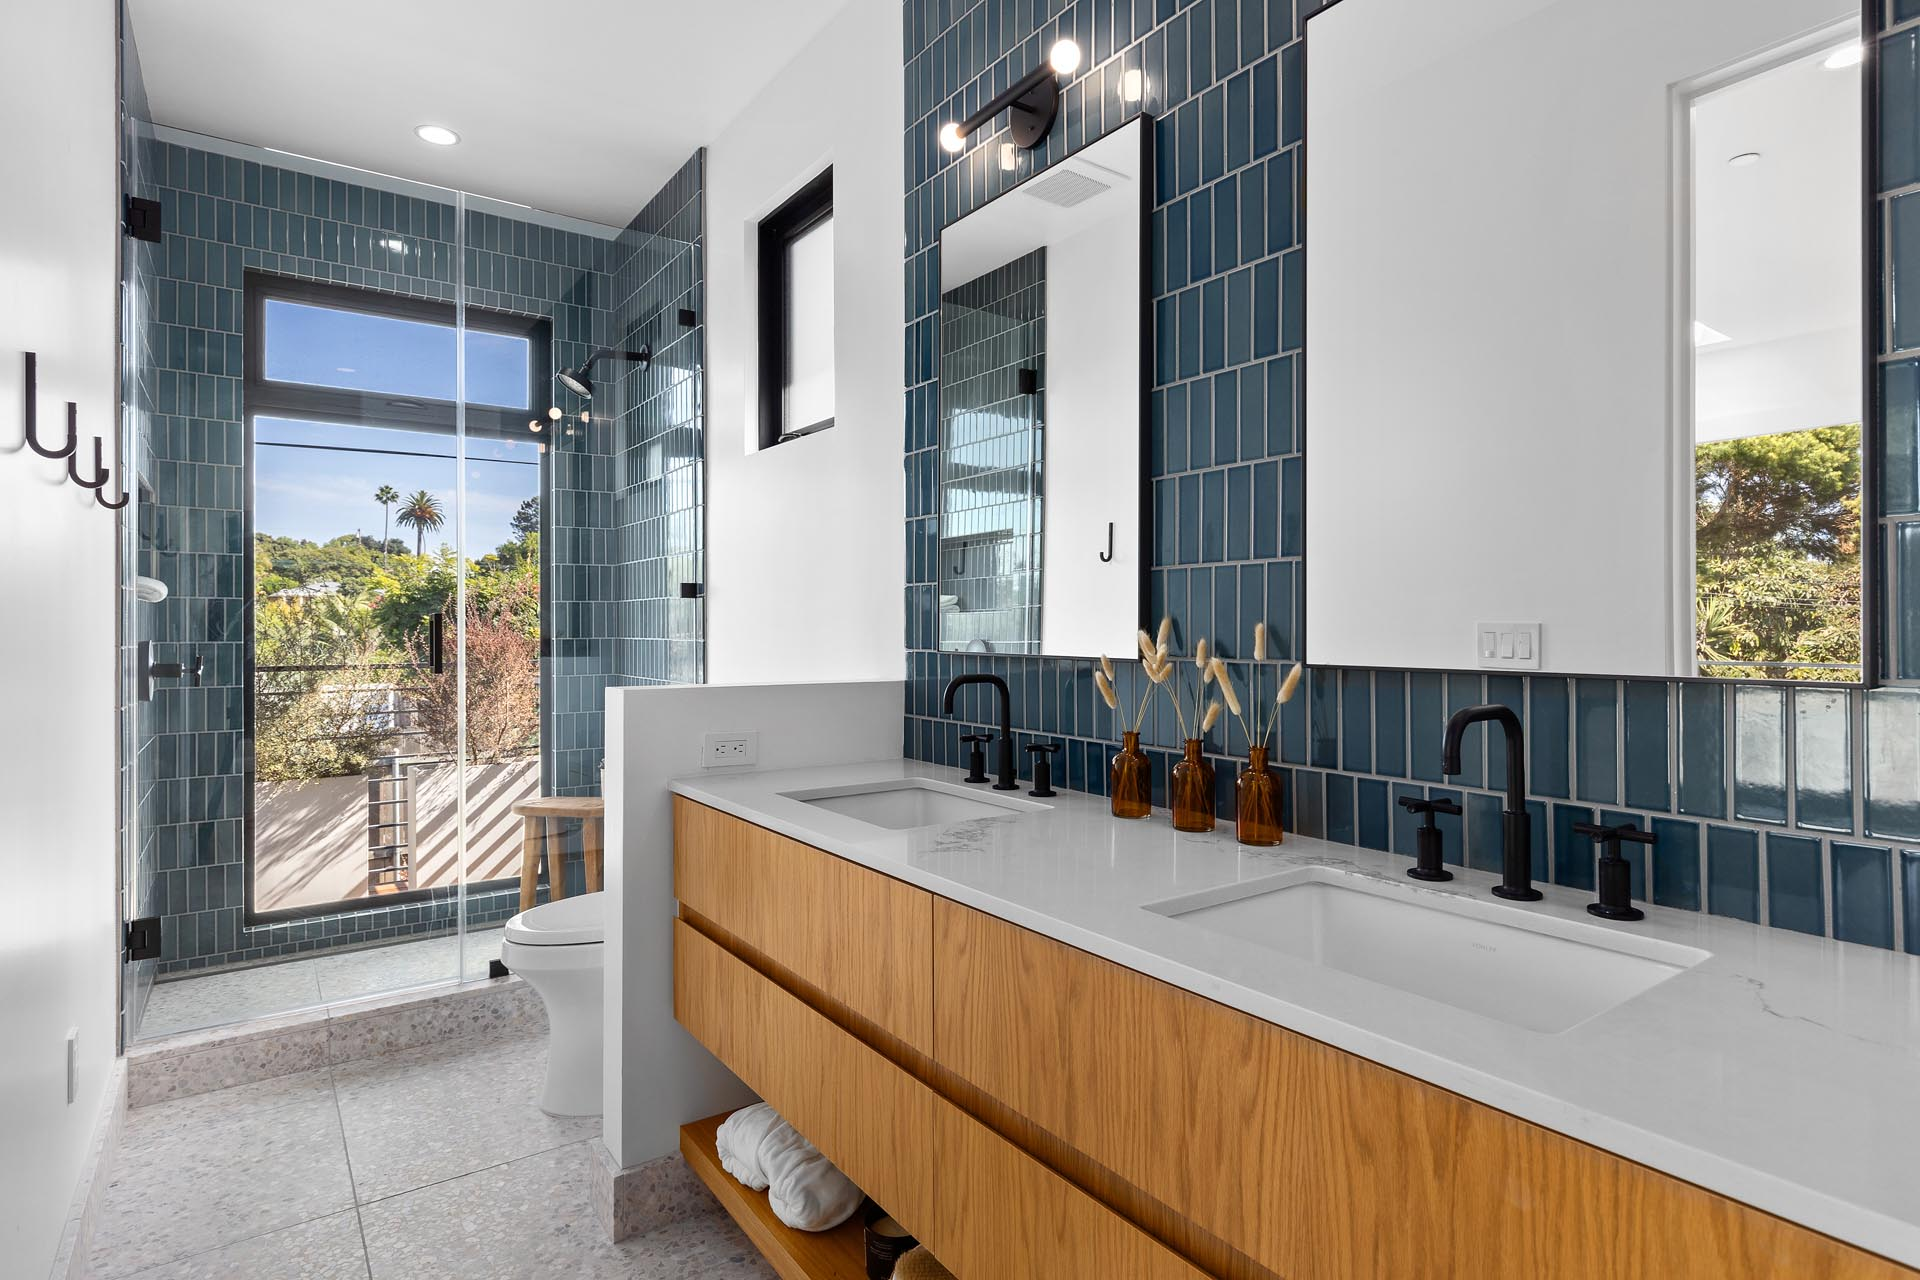 In this modern bathroom, blue tiles are featured on the wall and in the shower, and there's also a wood vanity with double sinks.